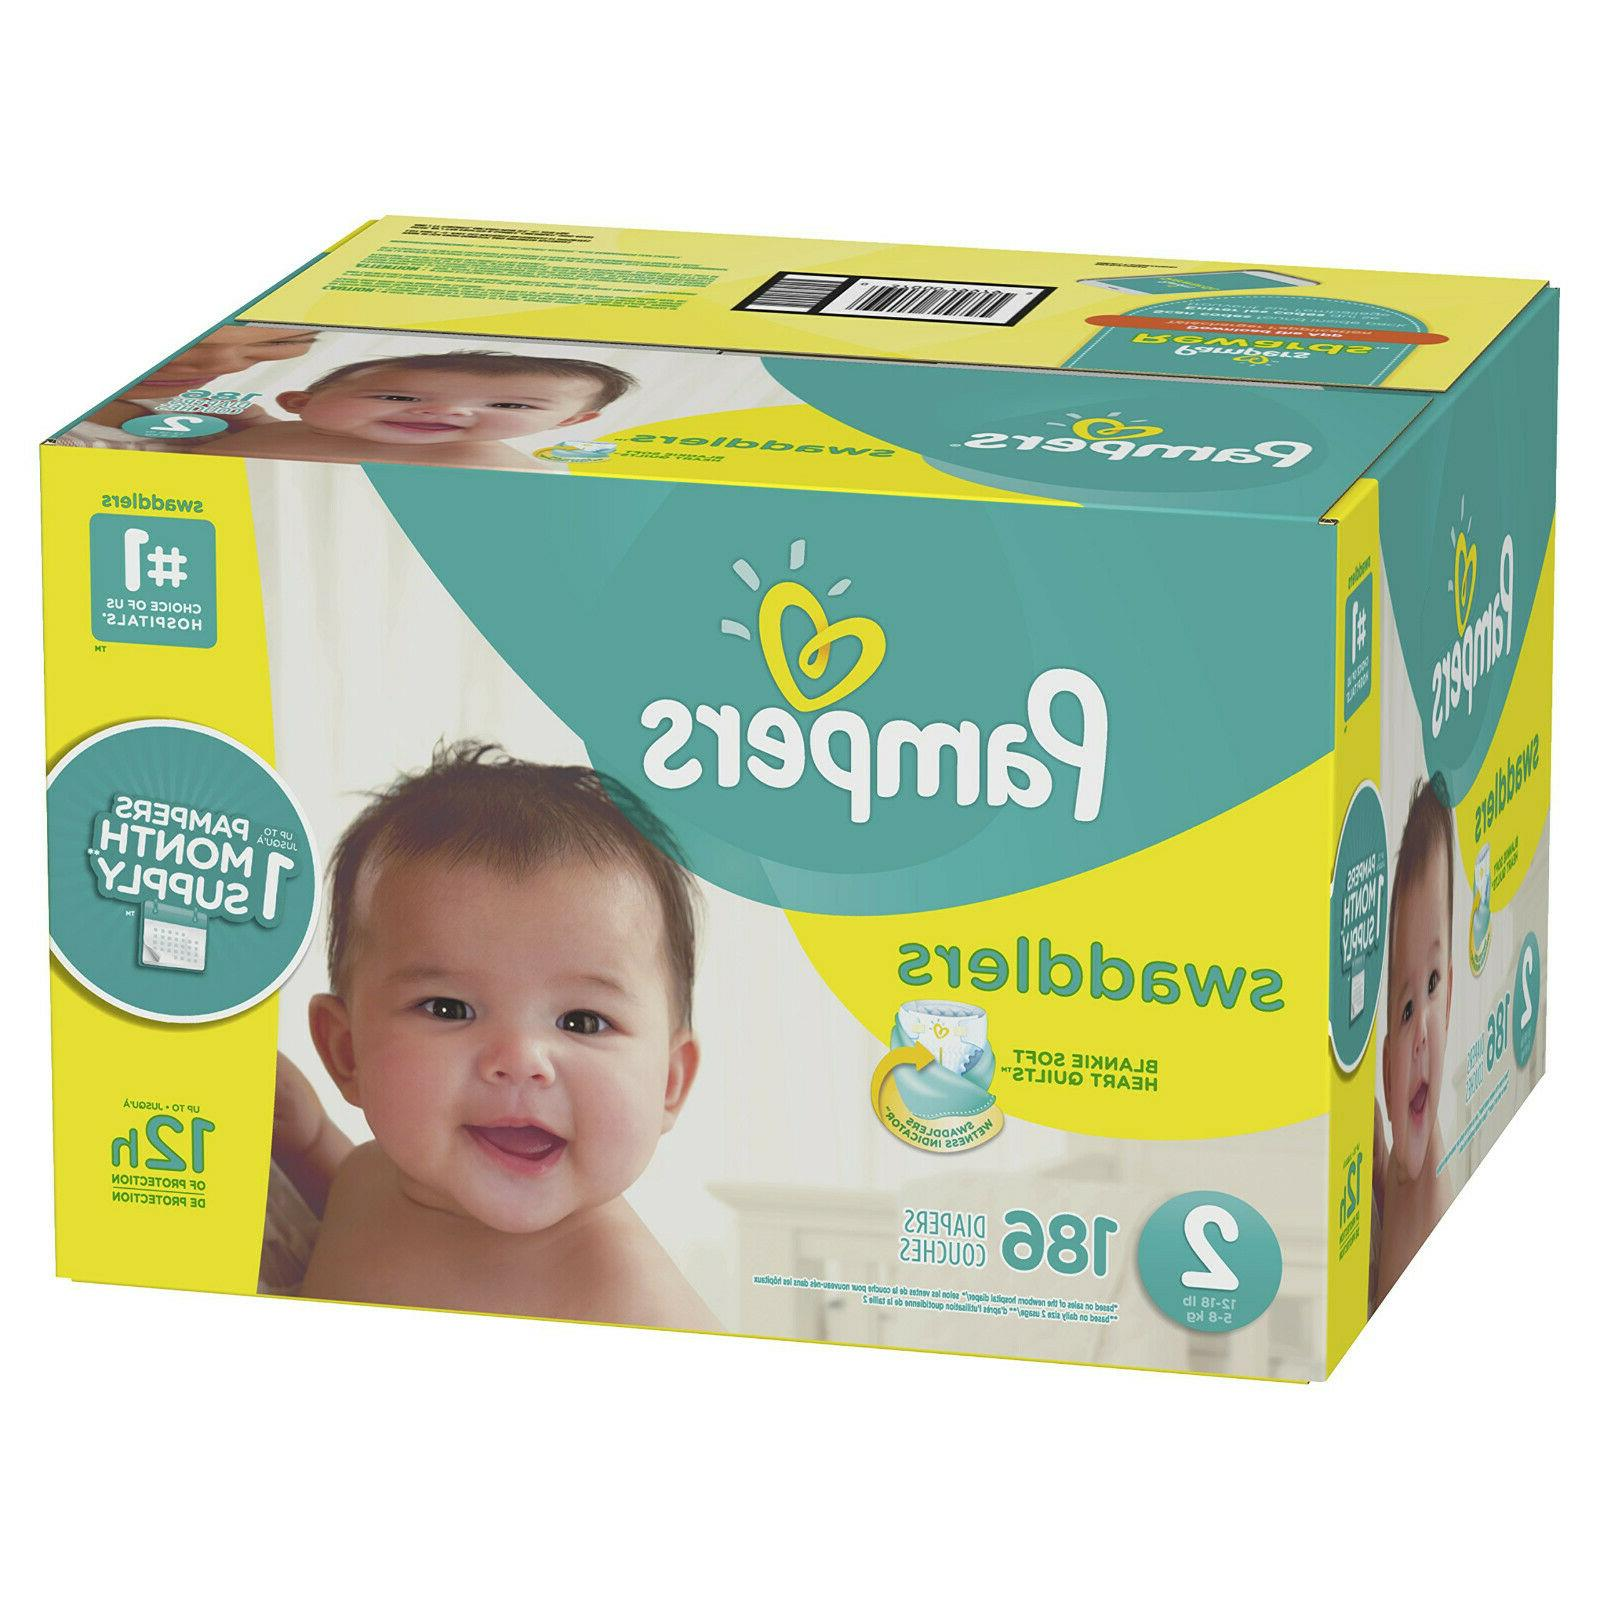 new swaddlers 186 count size 2 pack